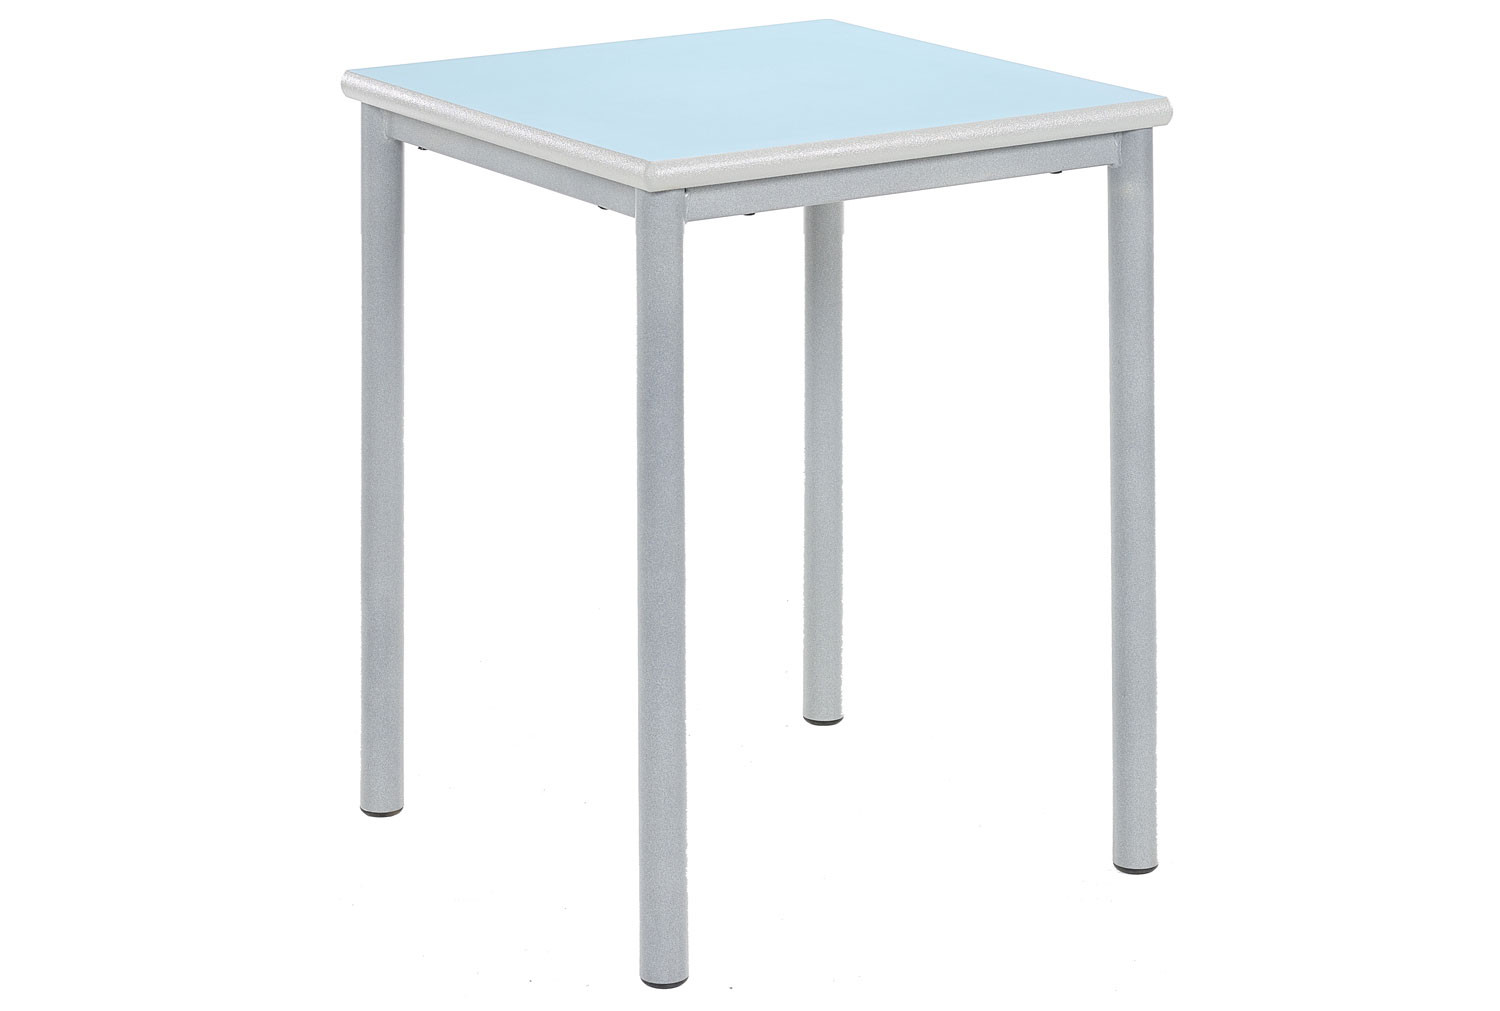 Gather Square Meeting Tables 60wx60d